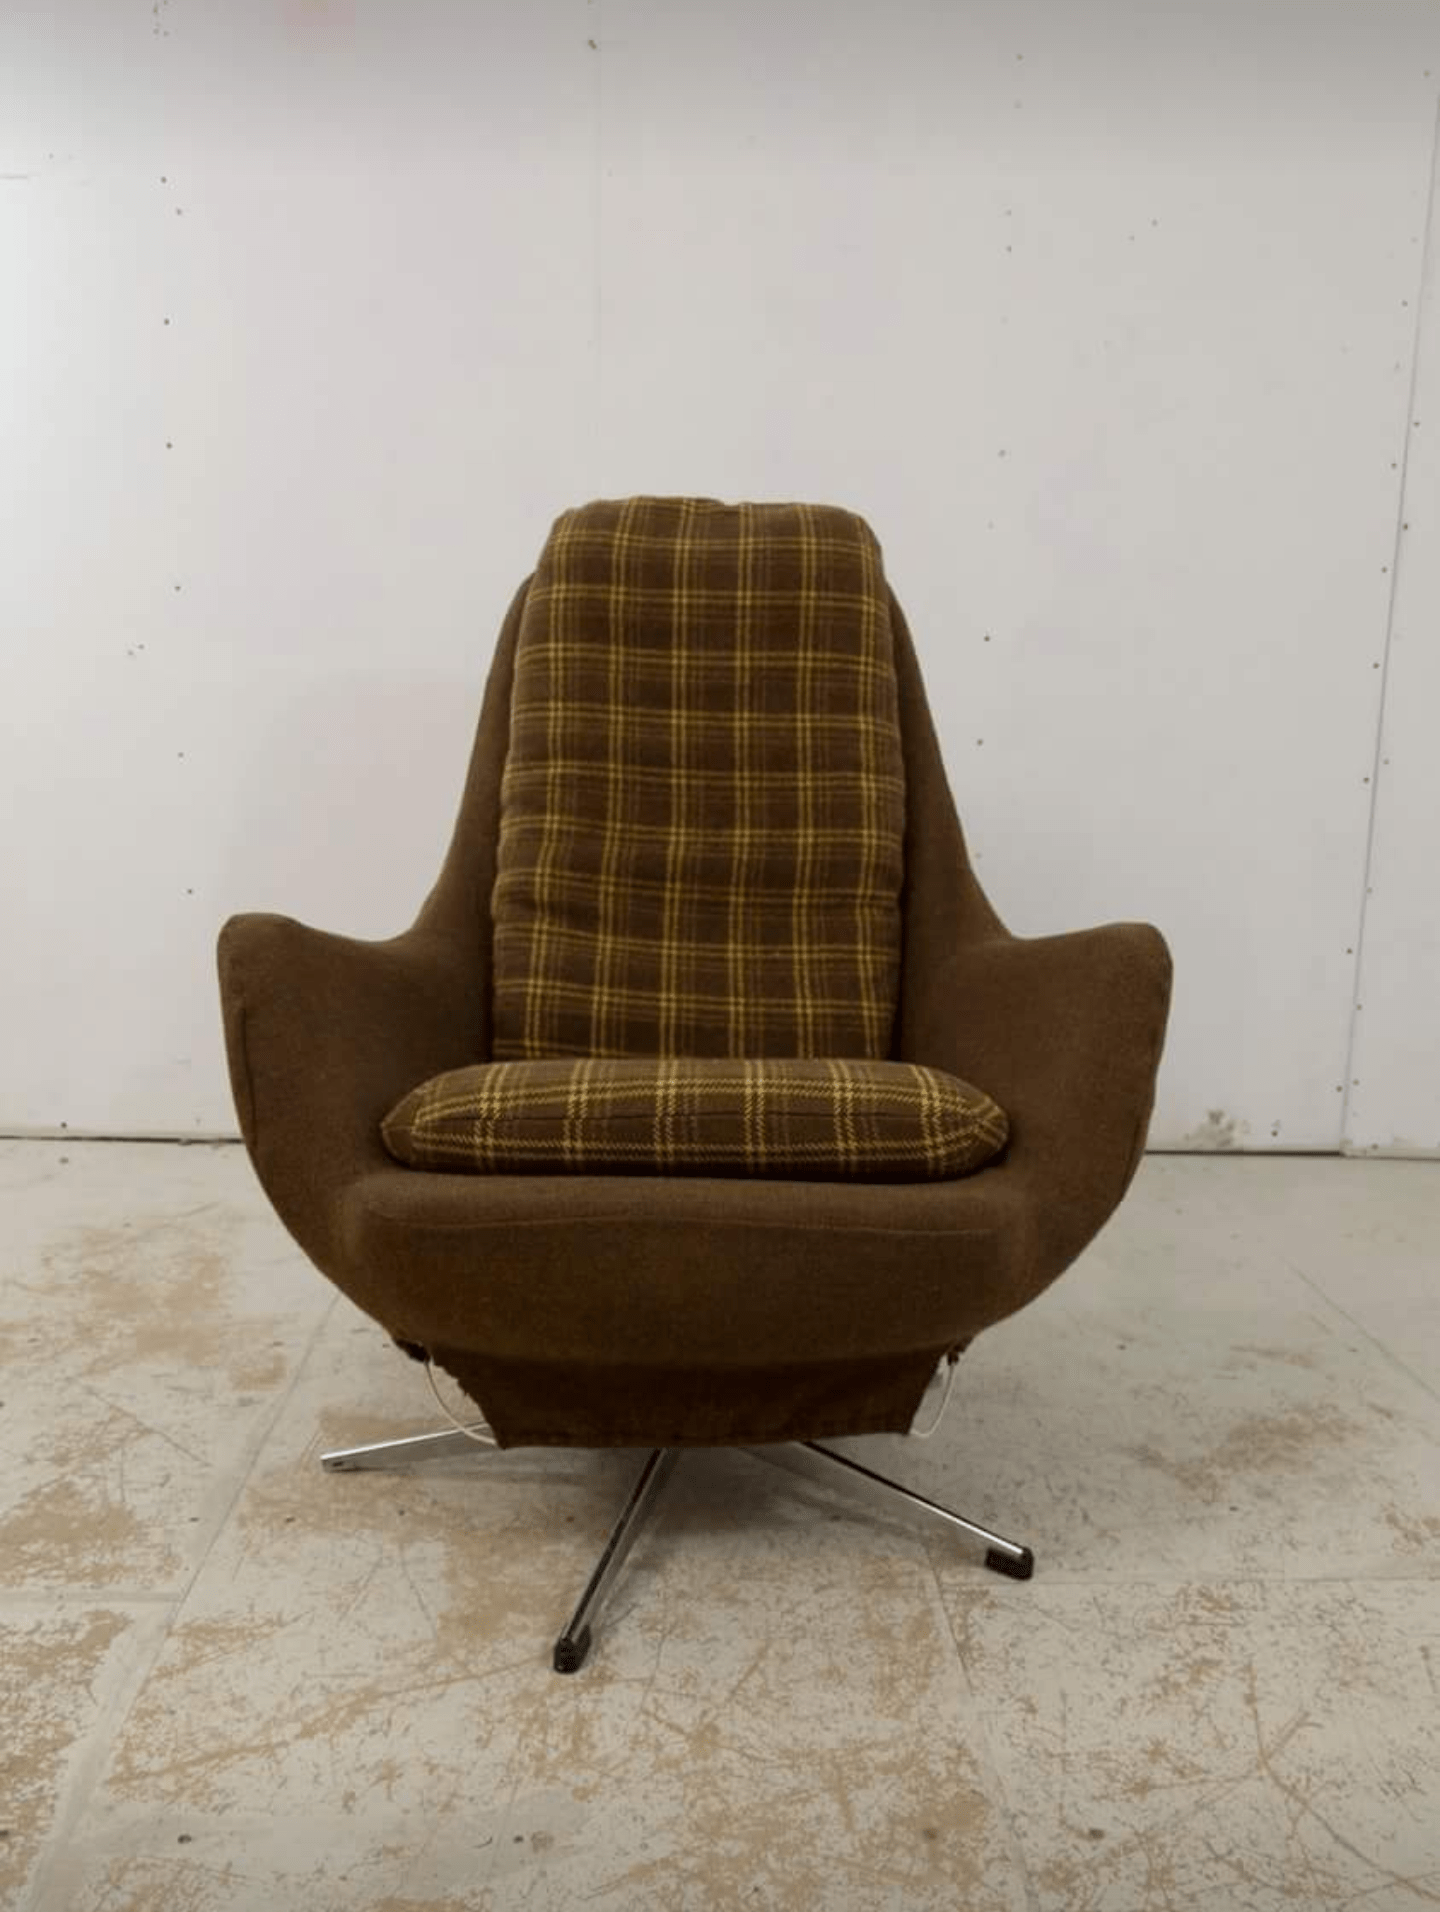 Reupholster Egg Chair Im Going To Be Reupholstering An Egg Chair And Would Like Pointing